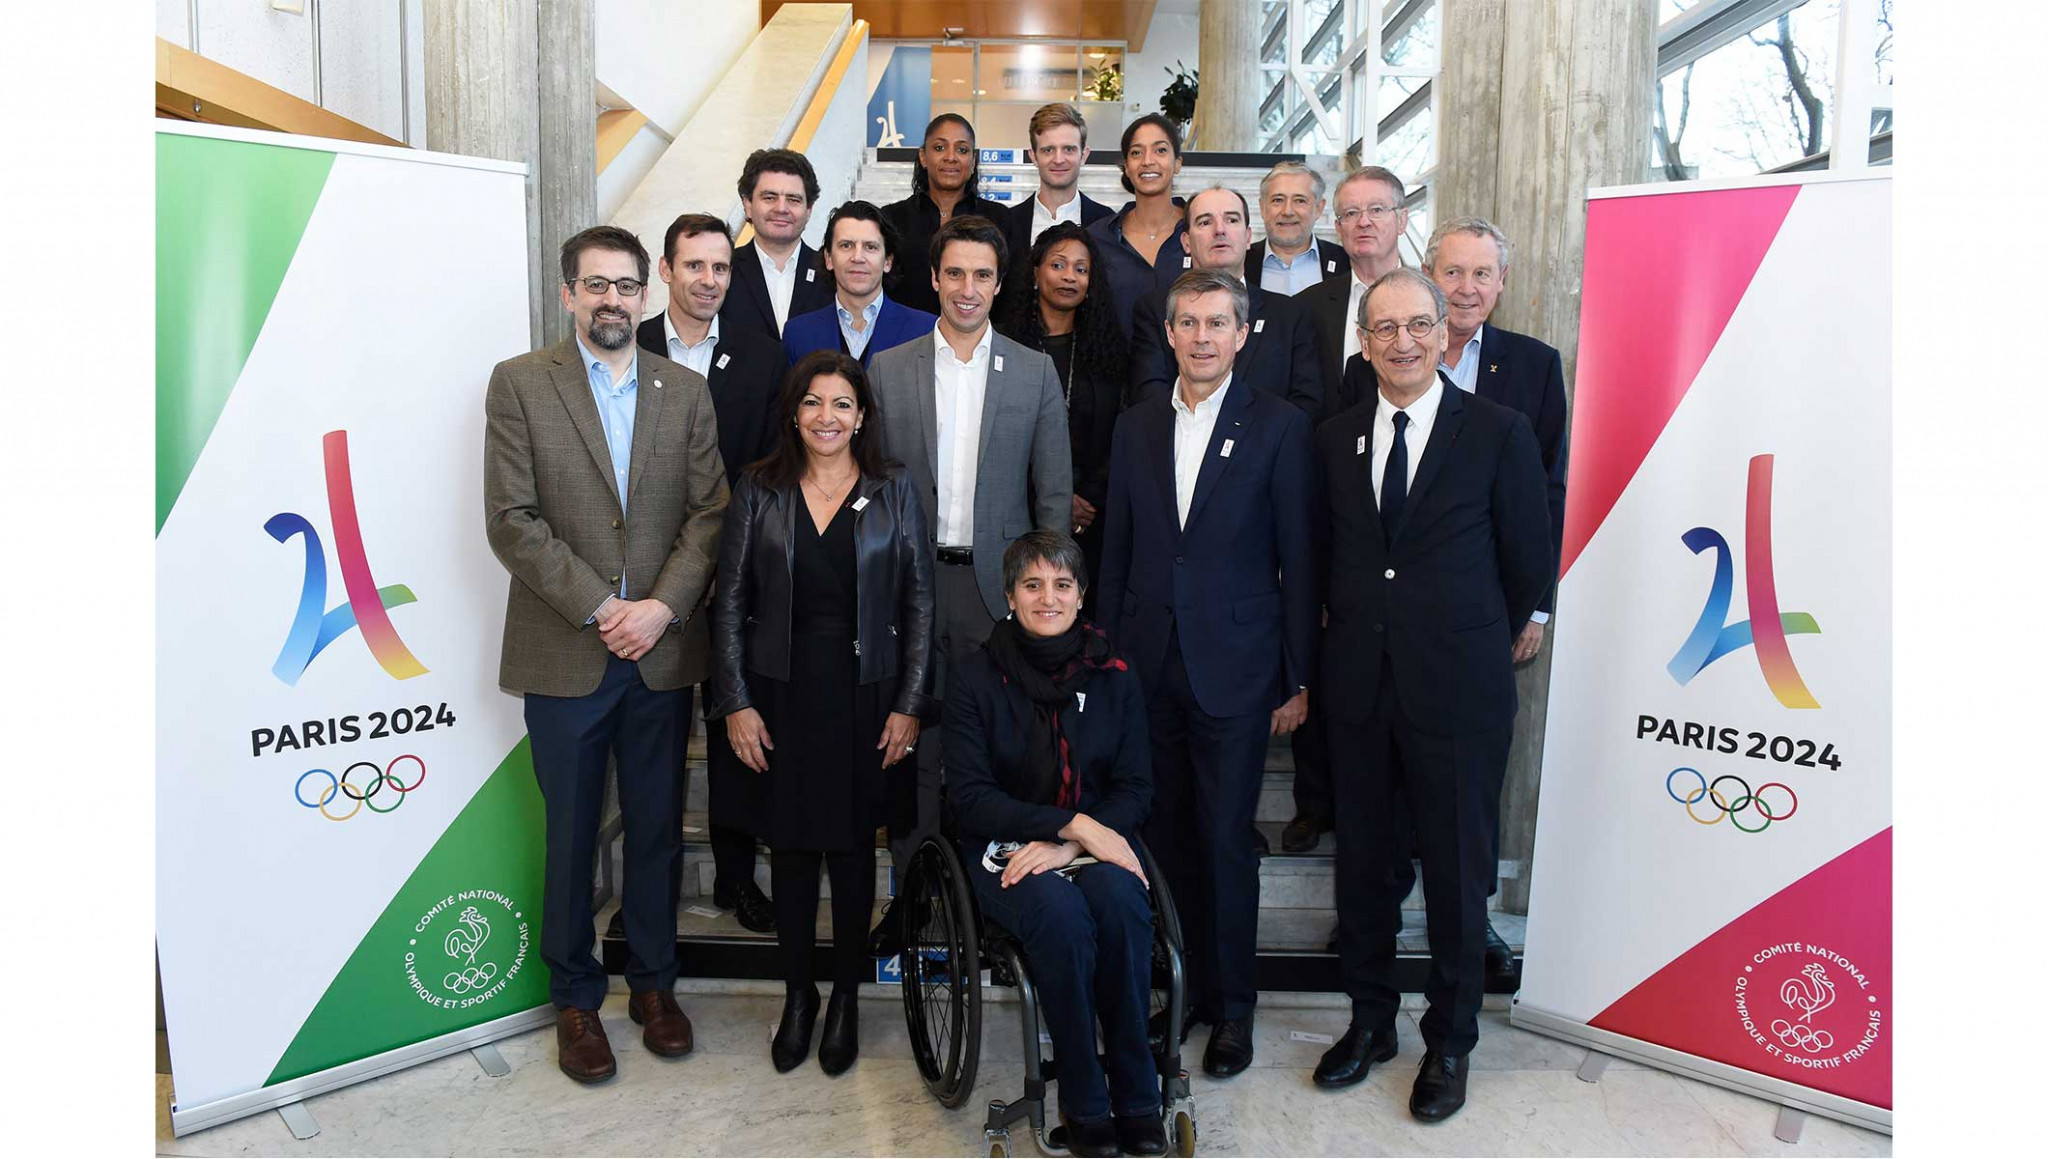 Paris Mayor Anne Hidalgo, second left front, joined the Orientation Seminar for the beginning of the meeting ©IOC